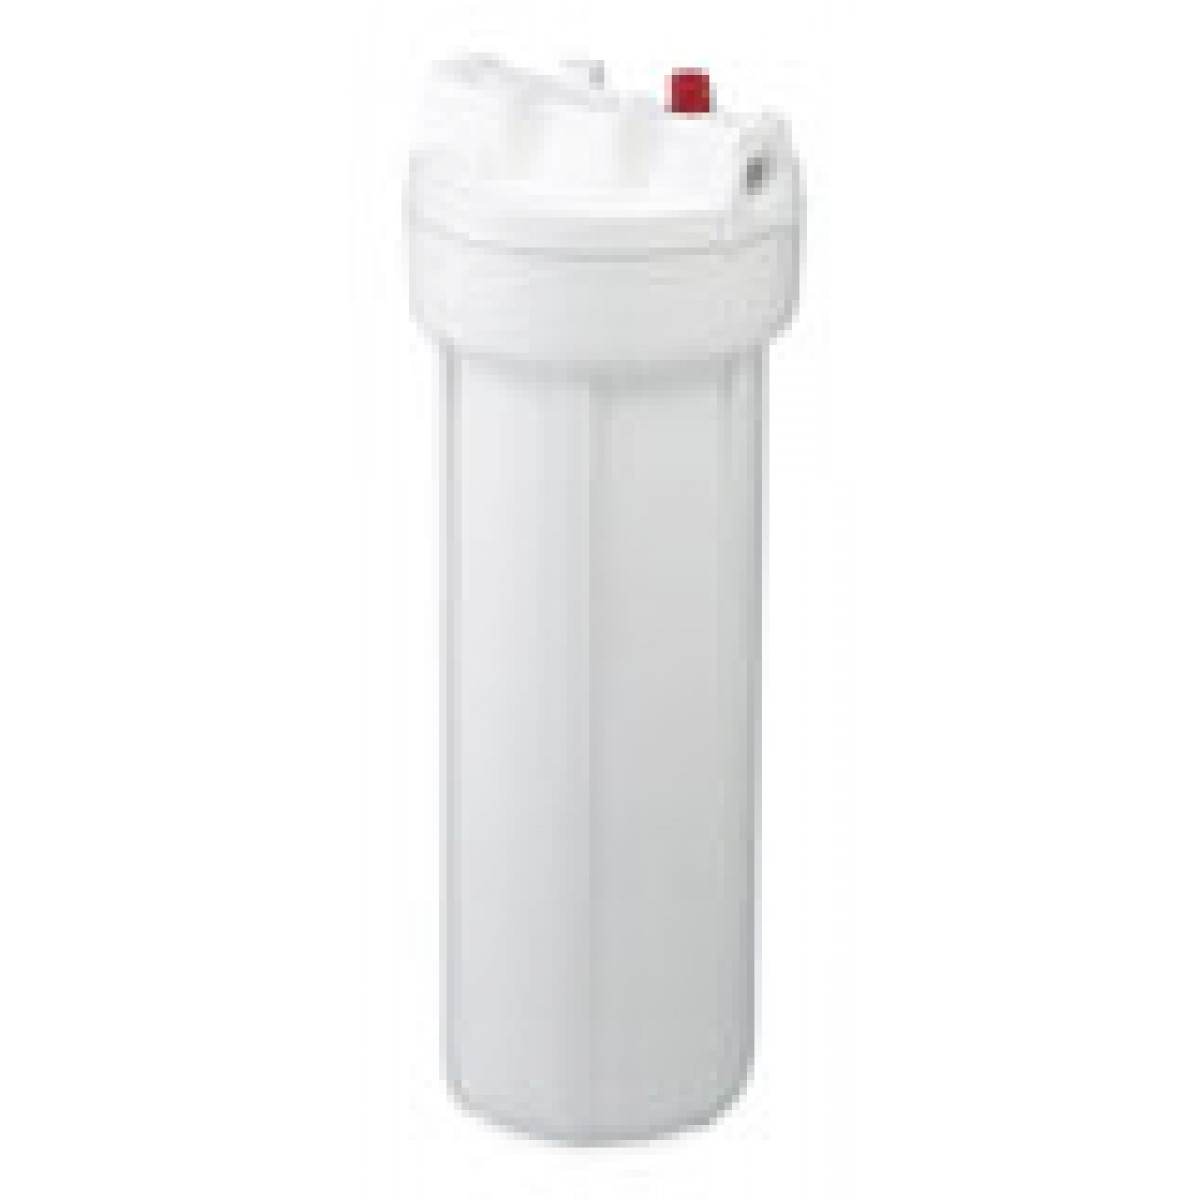 #A72436 Water Filtration Systems For Home Lowes Best Home Design  Reliable 12958 Lowes Whole House Air Conditioners wallpaper with 1200x1200 px on helpvideos.info - Air Conditioners, Air Coolers and more